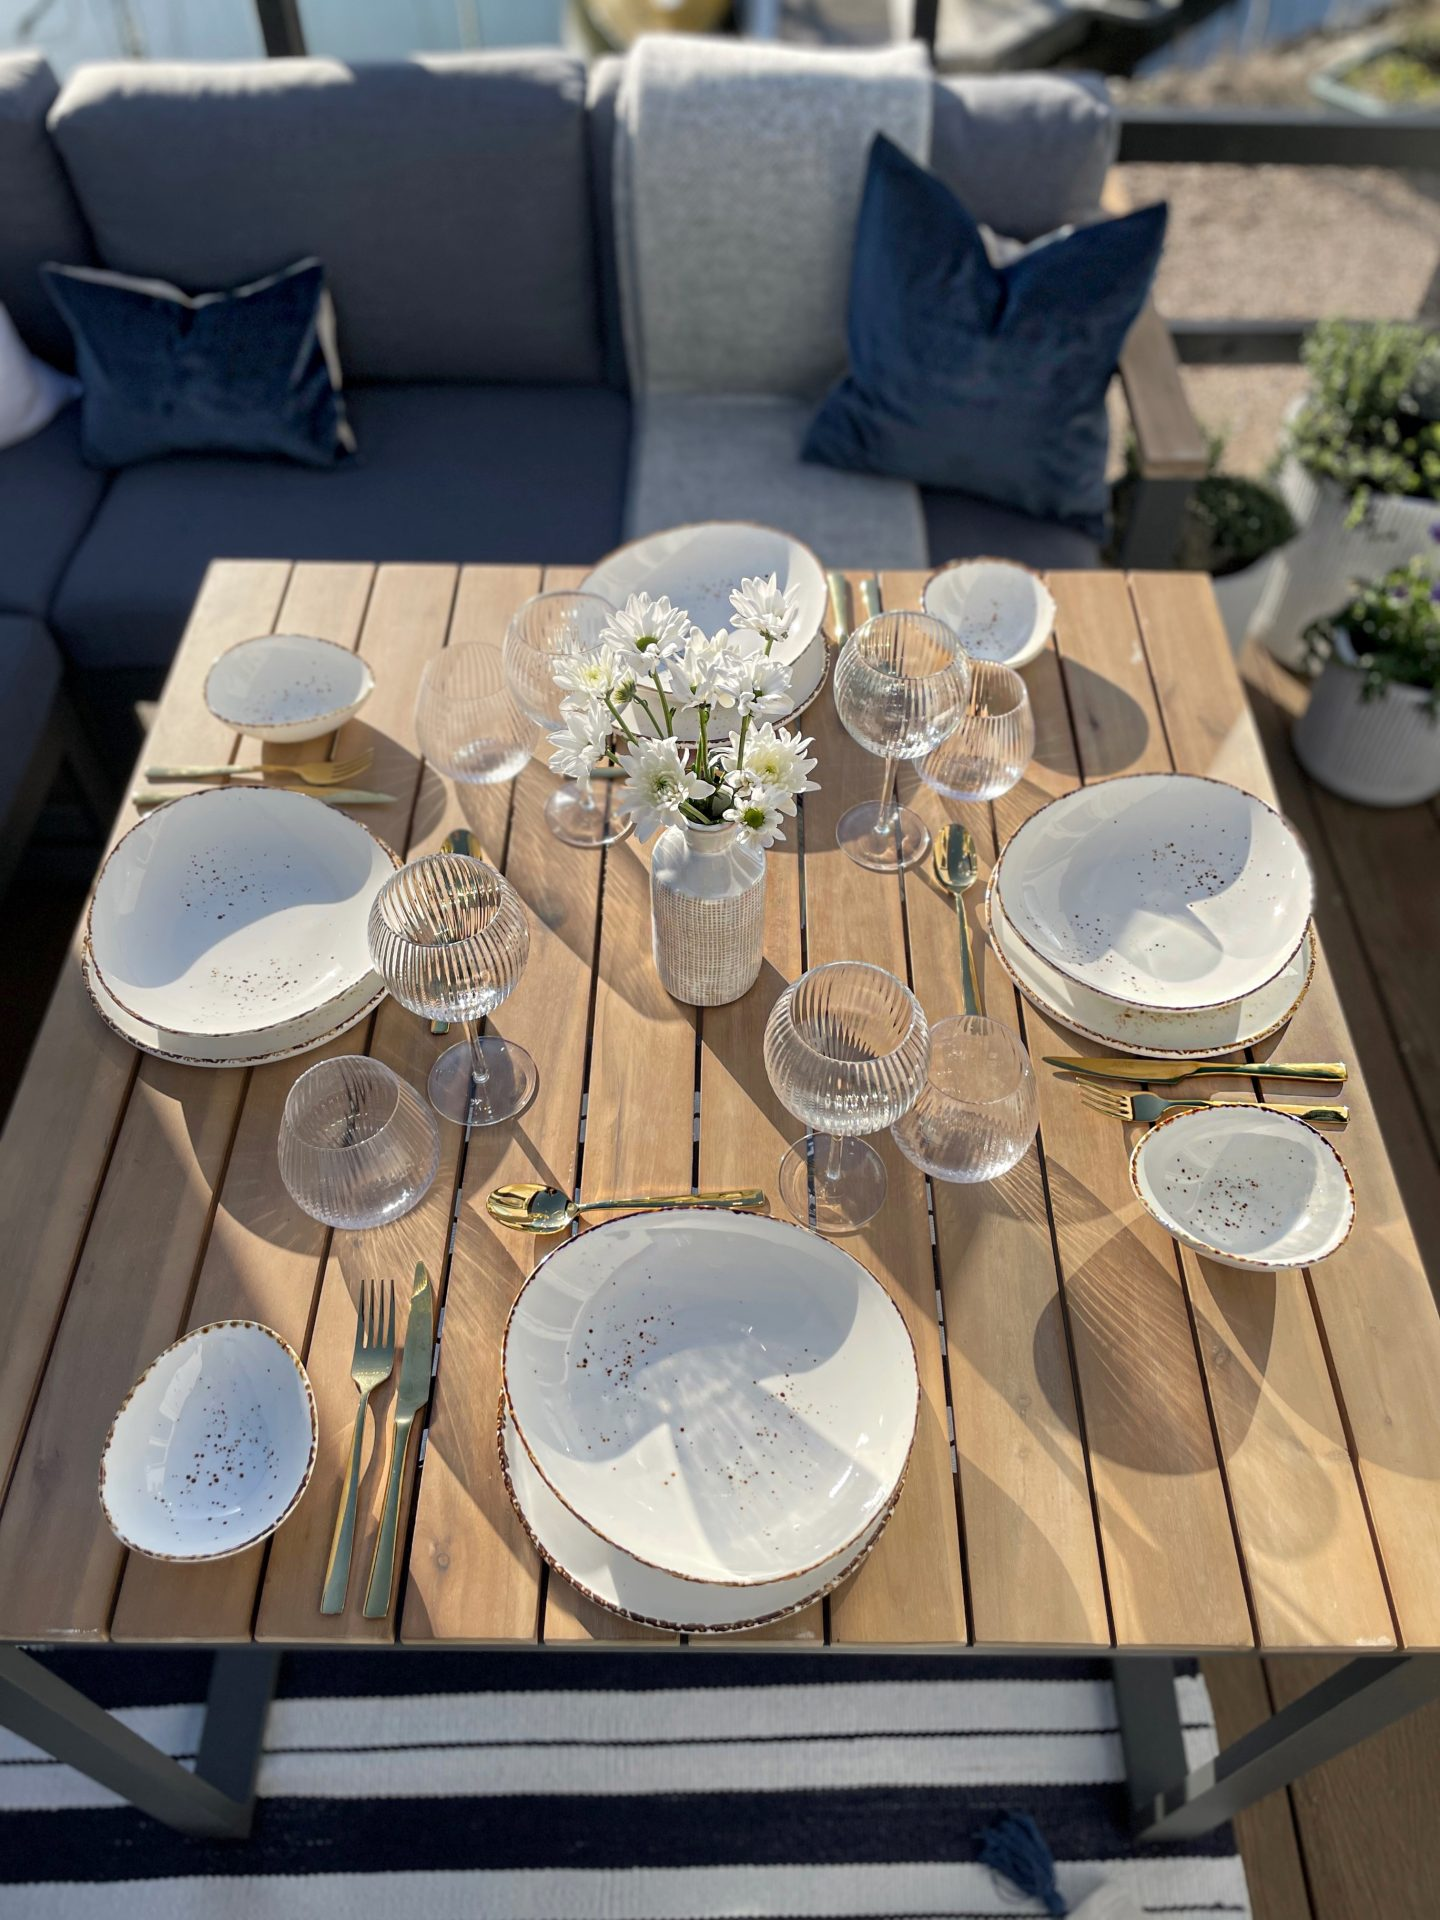 The Albany Corner Dining Set with Juni Tableware and Fluted Wine glasses and Tumblers. Finished with the Whitewashed Vase.